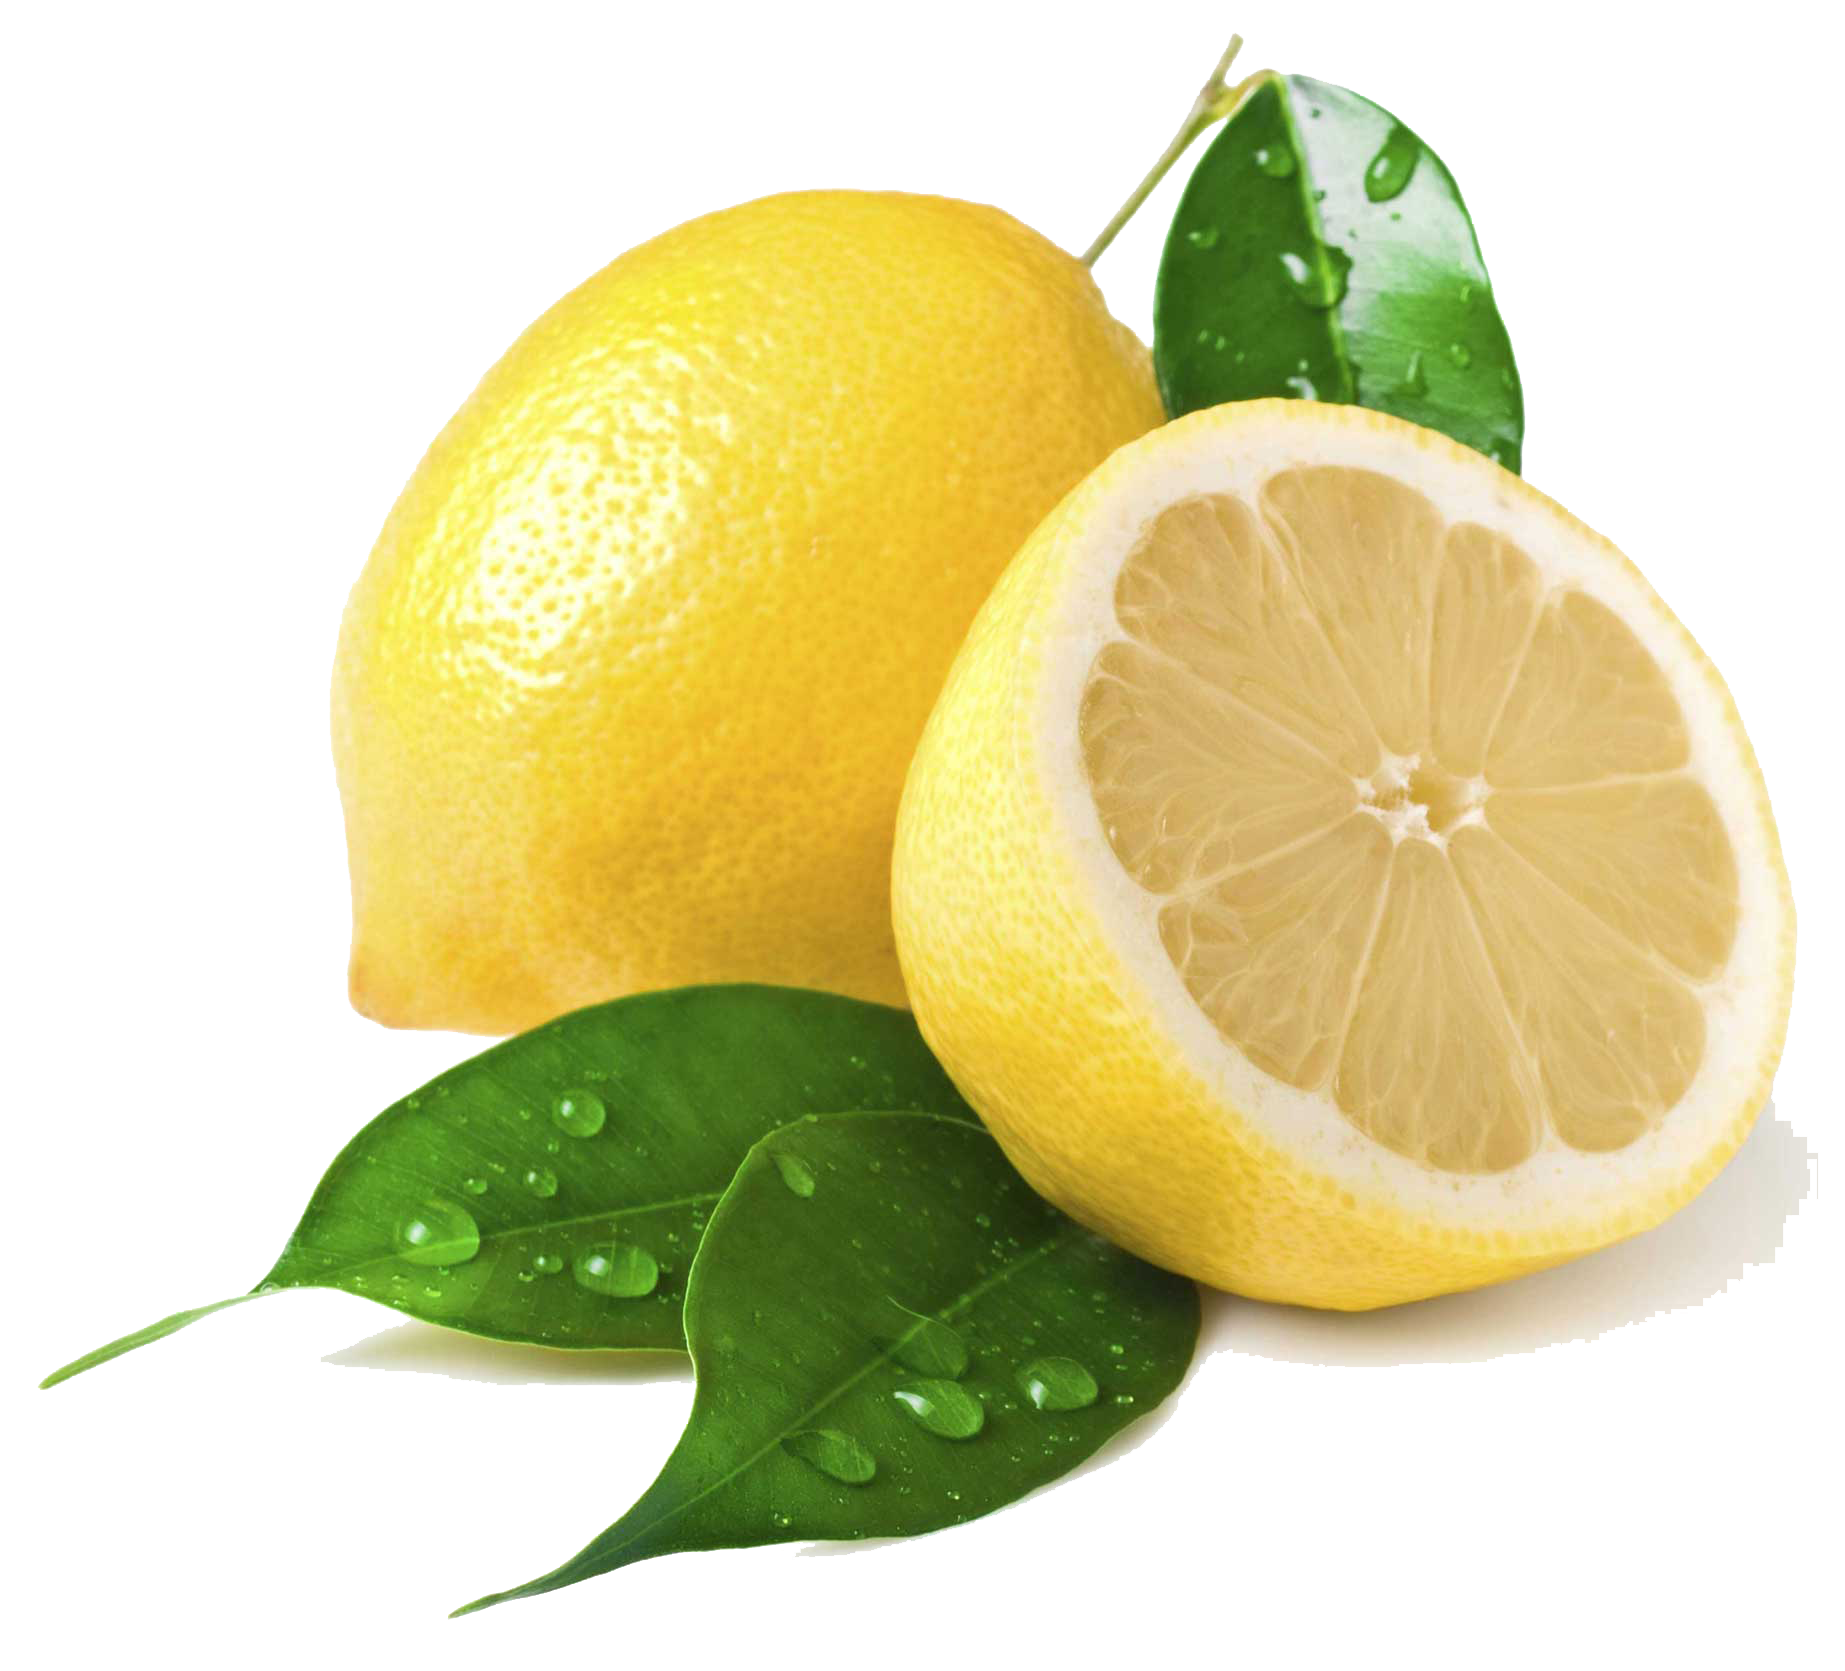 Lemon Fruit With Leaf Png image #38647